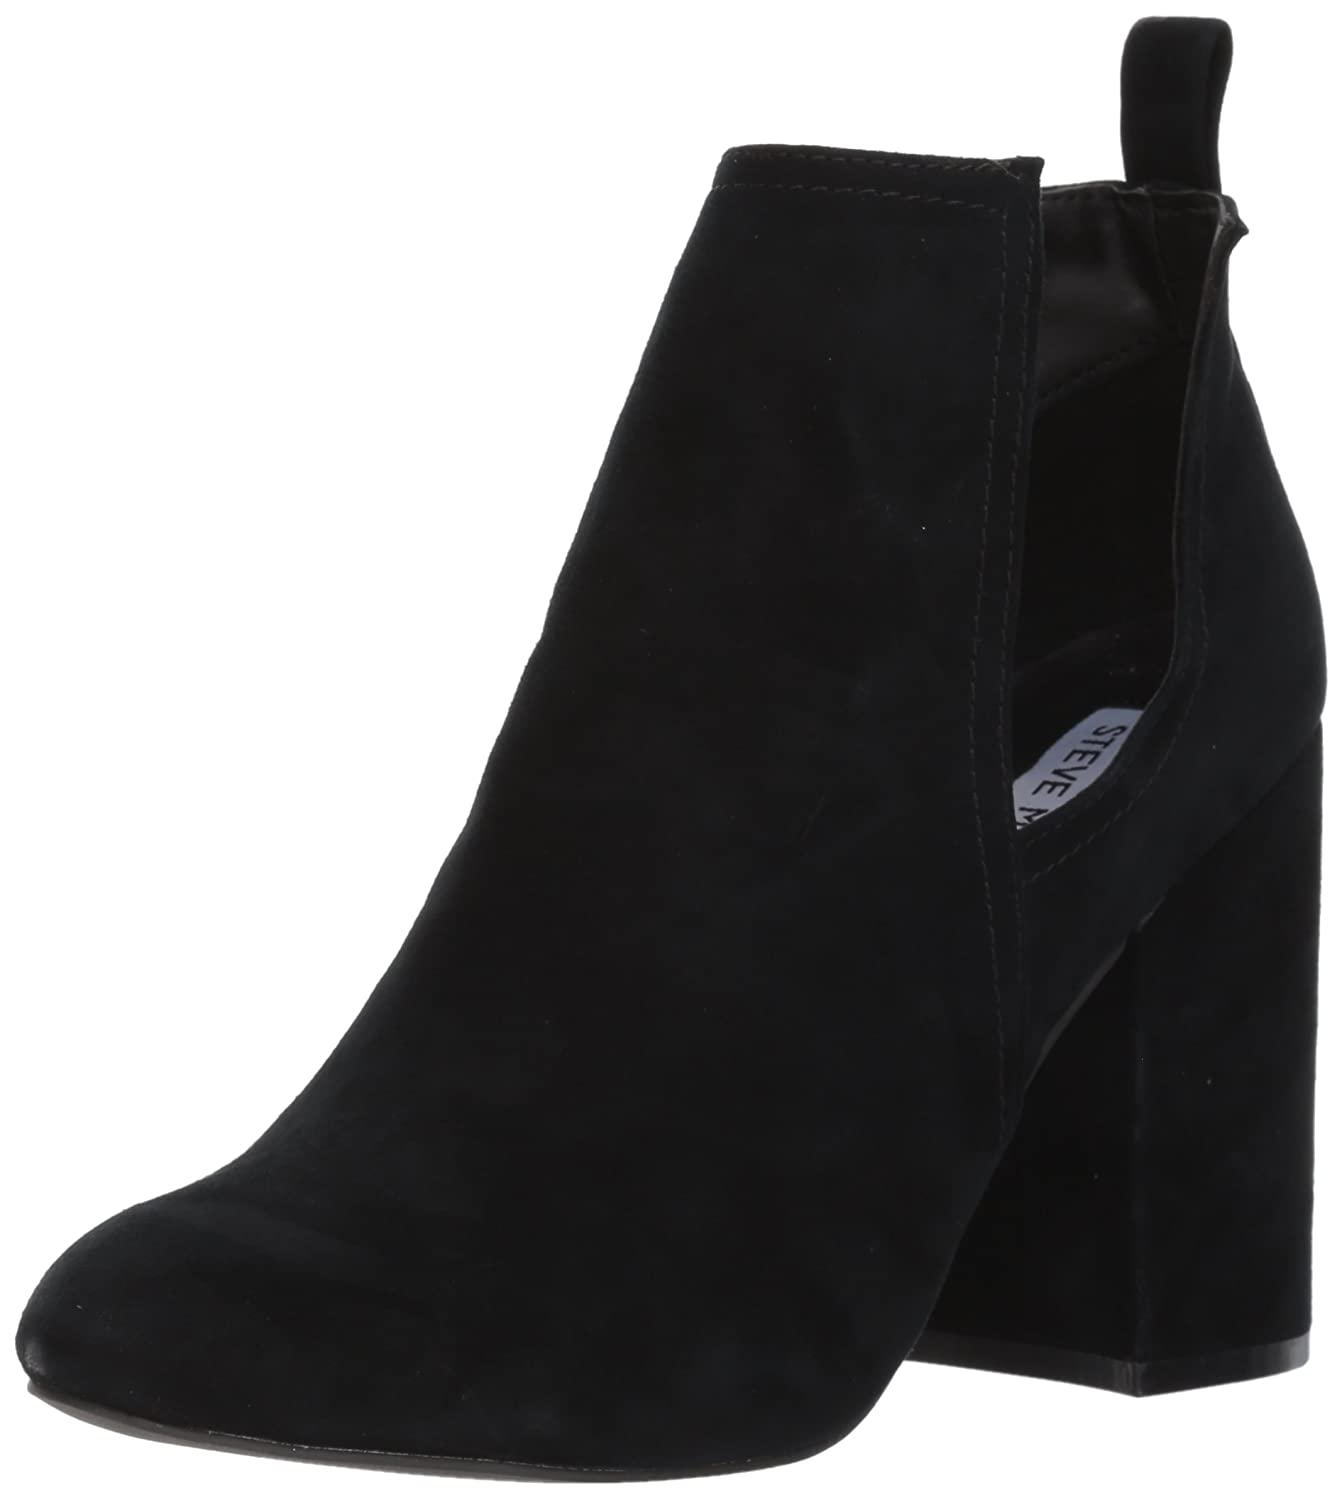 Steve Madden Women's Naomi Ankle Bootie B06X6NBB7P 8 B(M) US|Black Suede